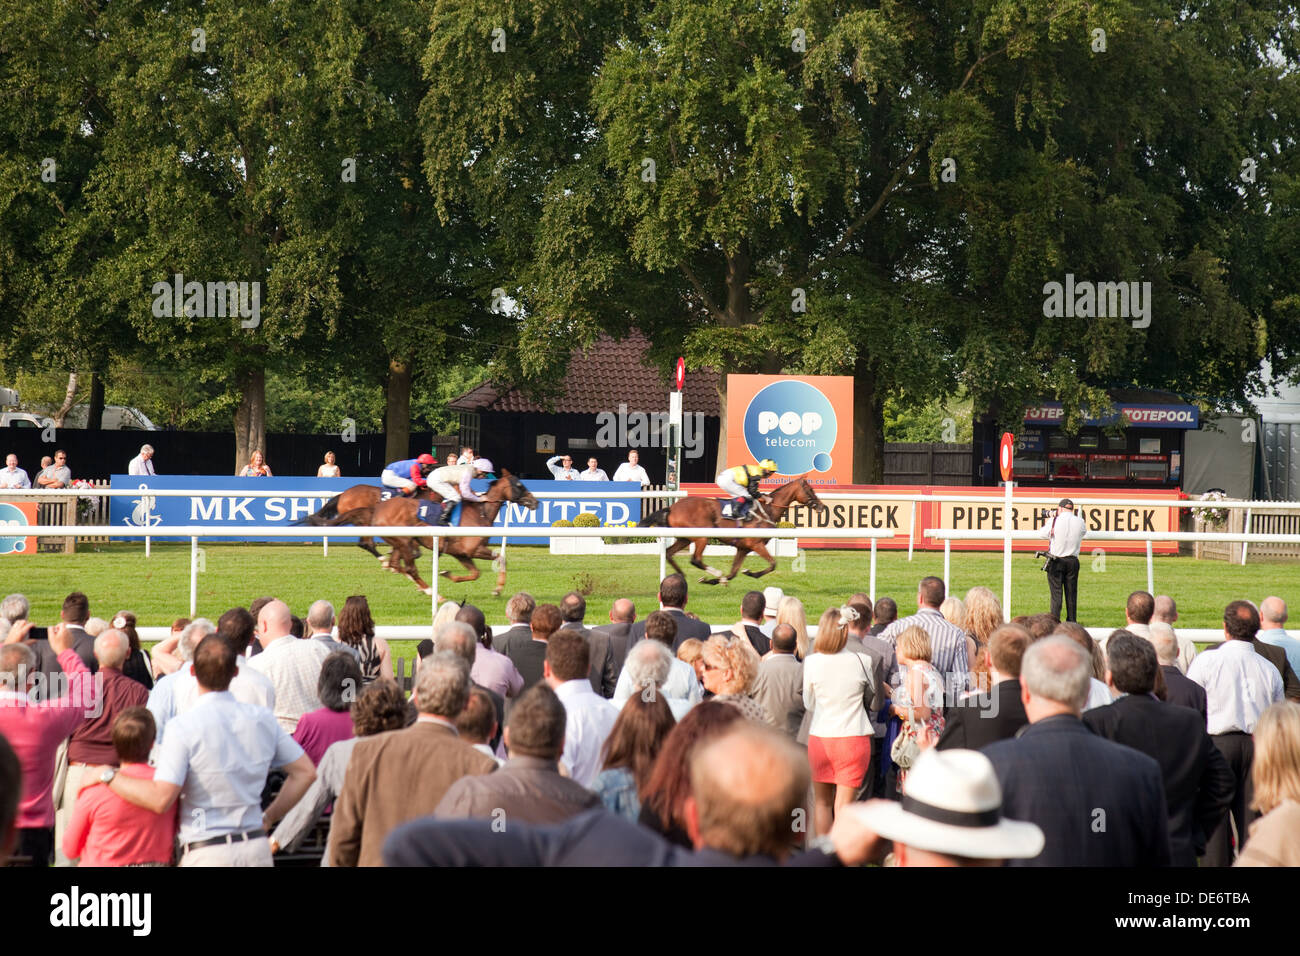 First past the winning post at Newmarket races, the July racecourse, Newmarket Suffolk UK - Stock Image